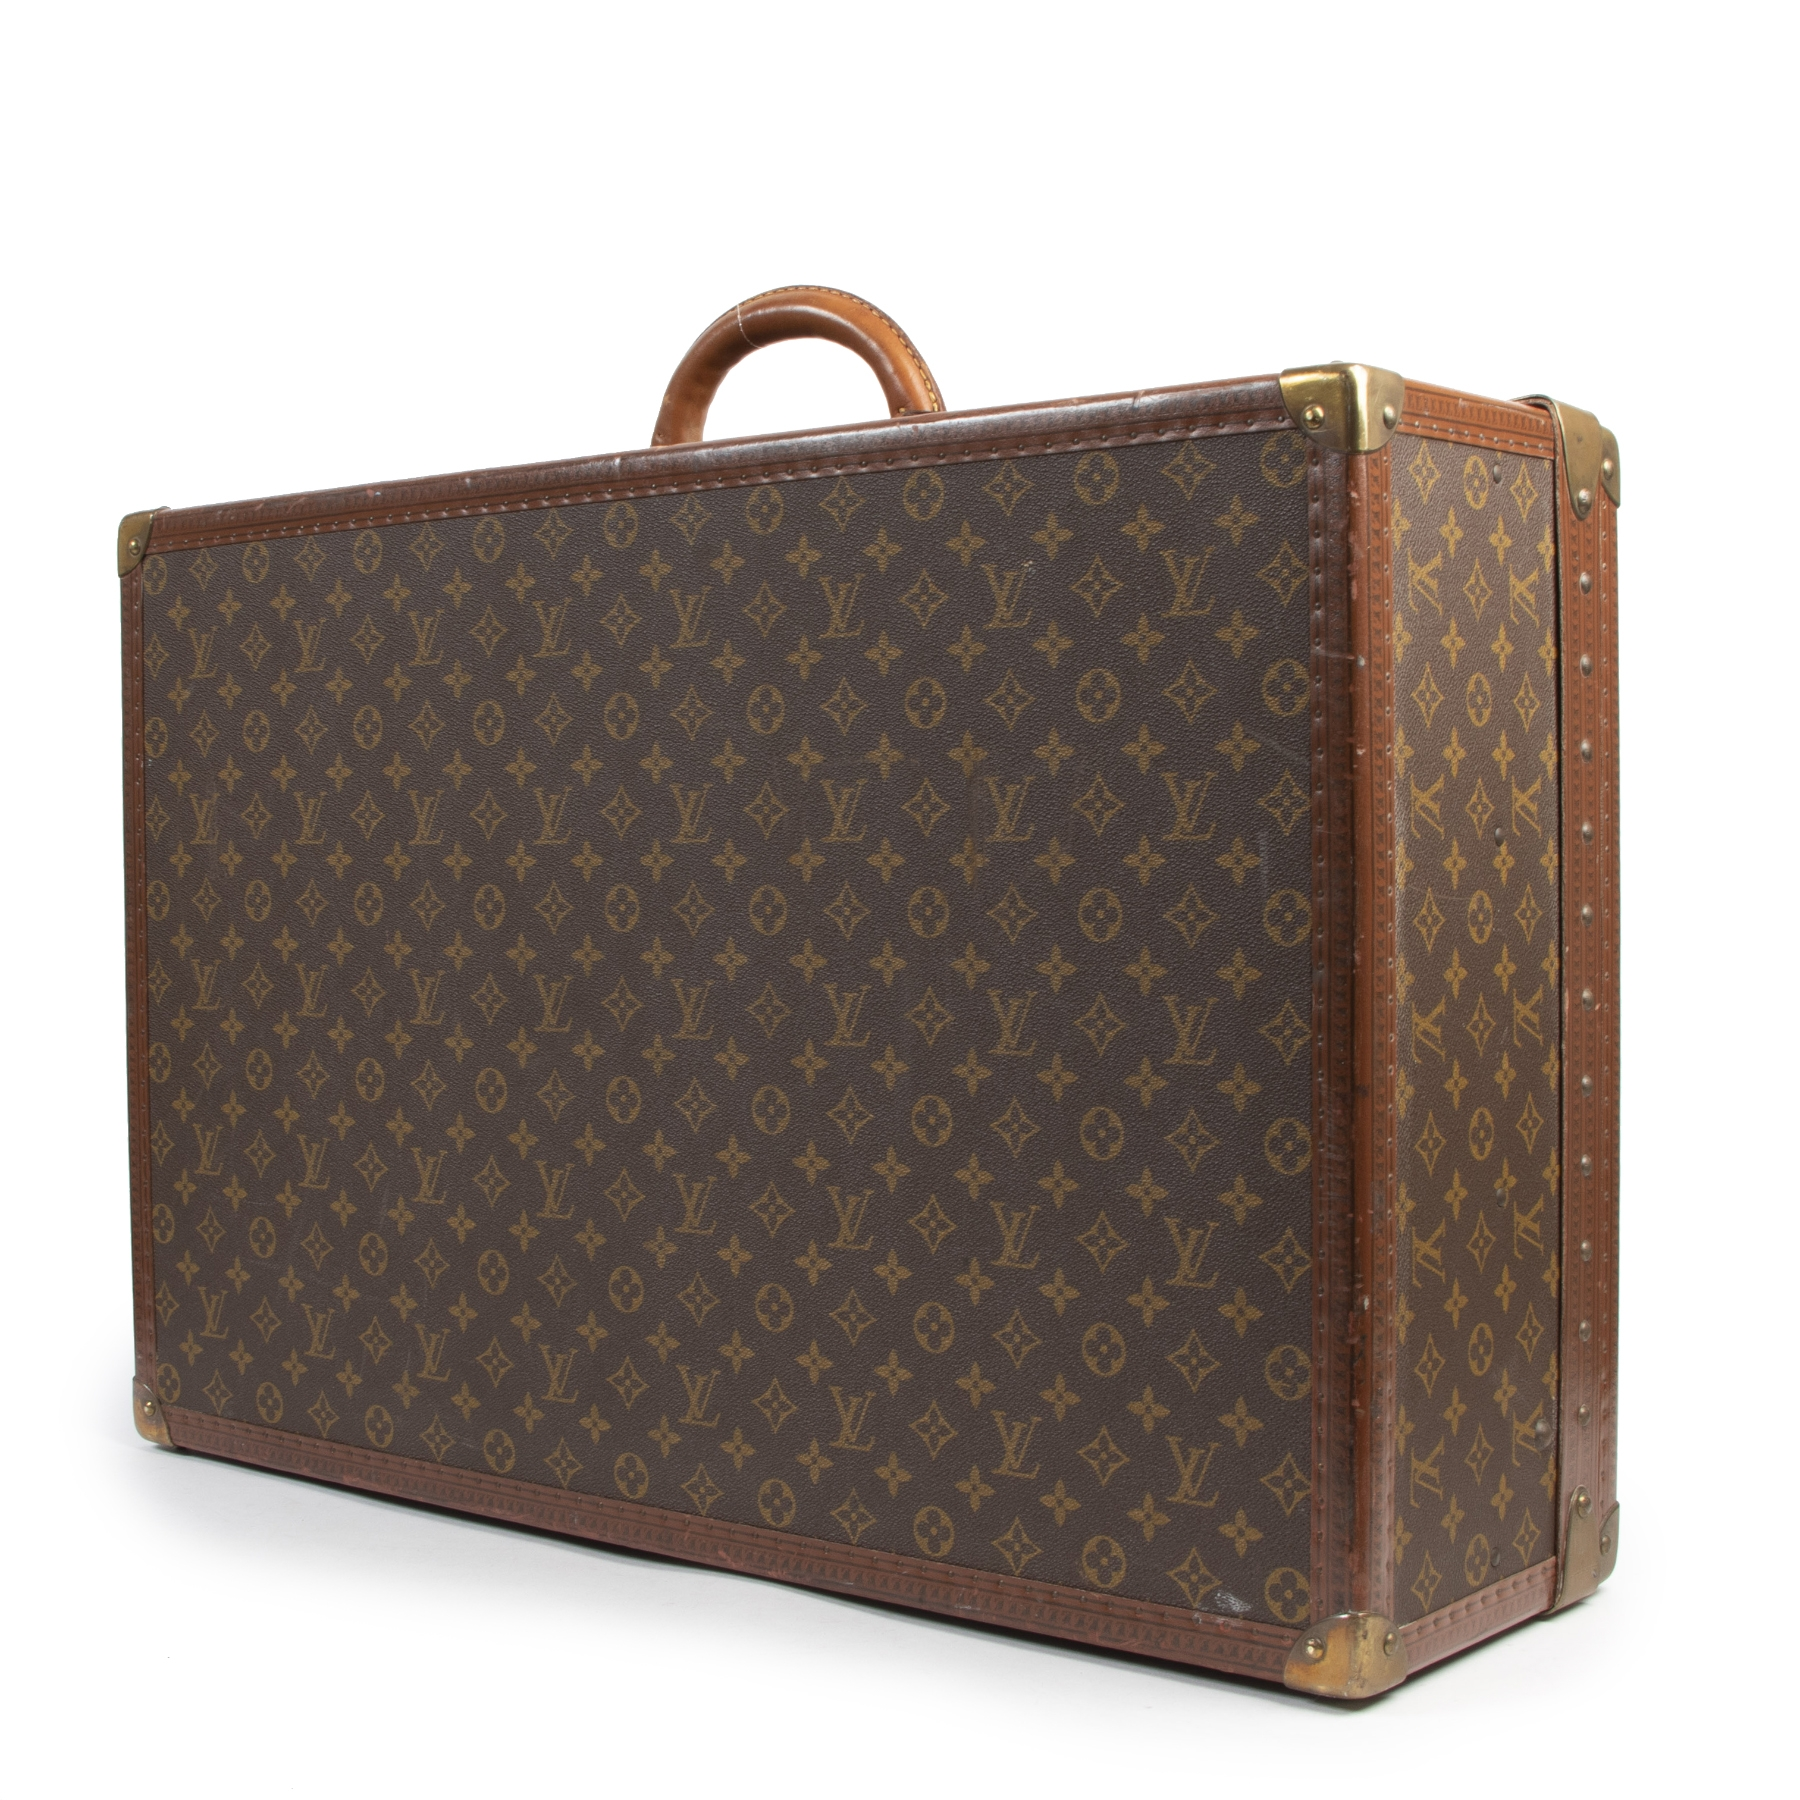 Louis Vuitton Alzer 70 Luggage